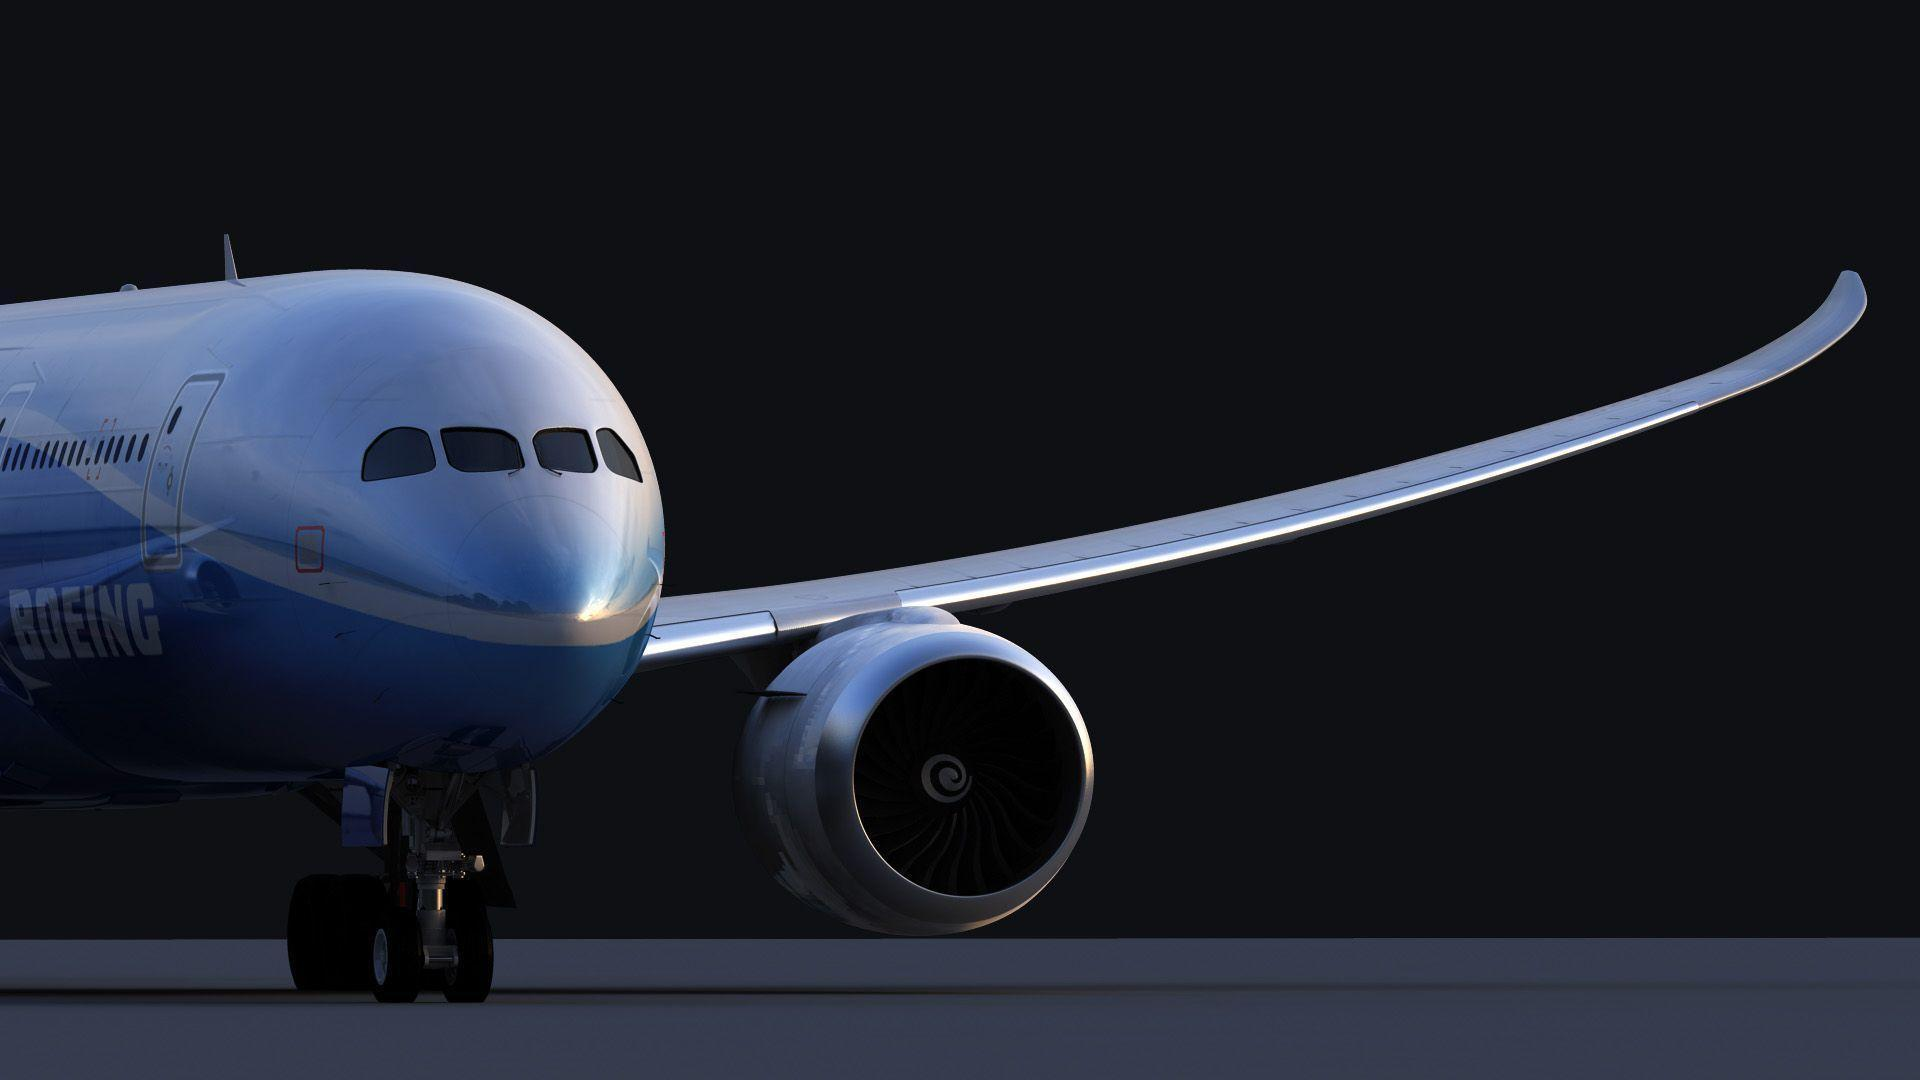 dreamliner wallpaper - photo #10